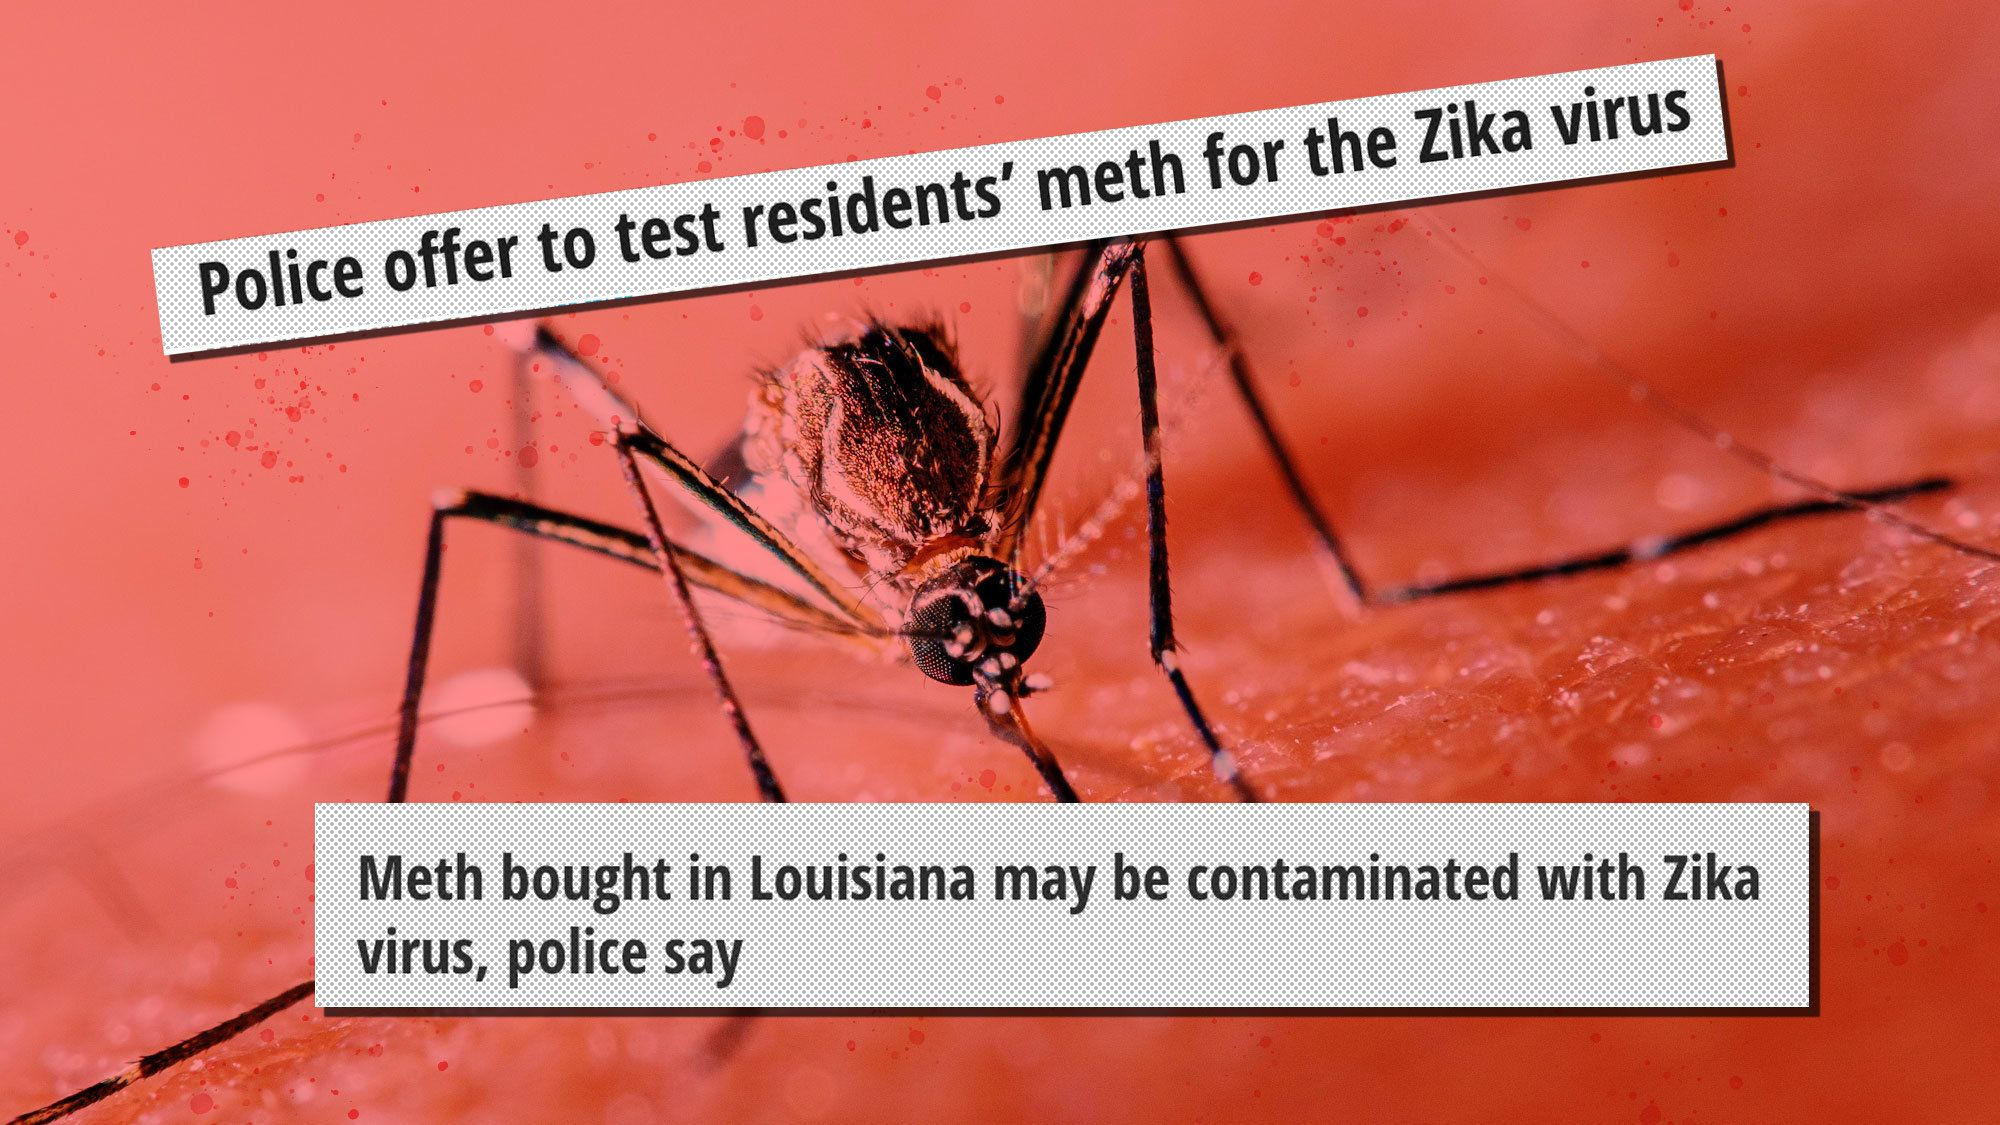 Louisiana police warn meth users drug 'may be contaminated with the Zika'